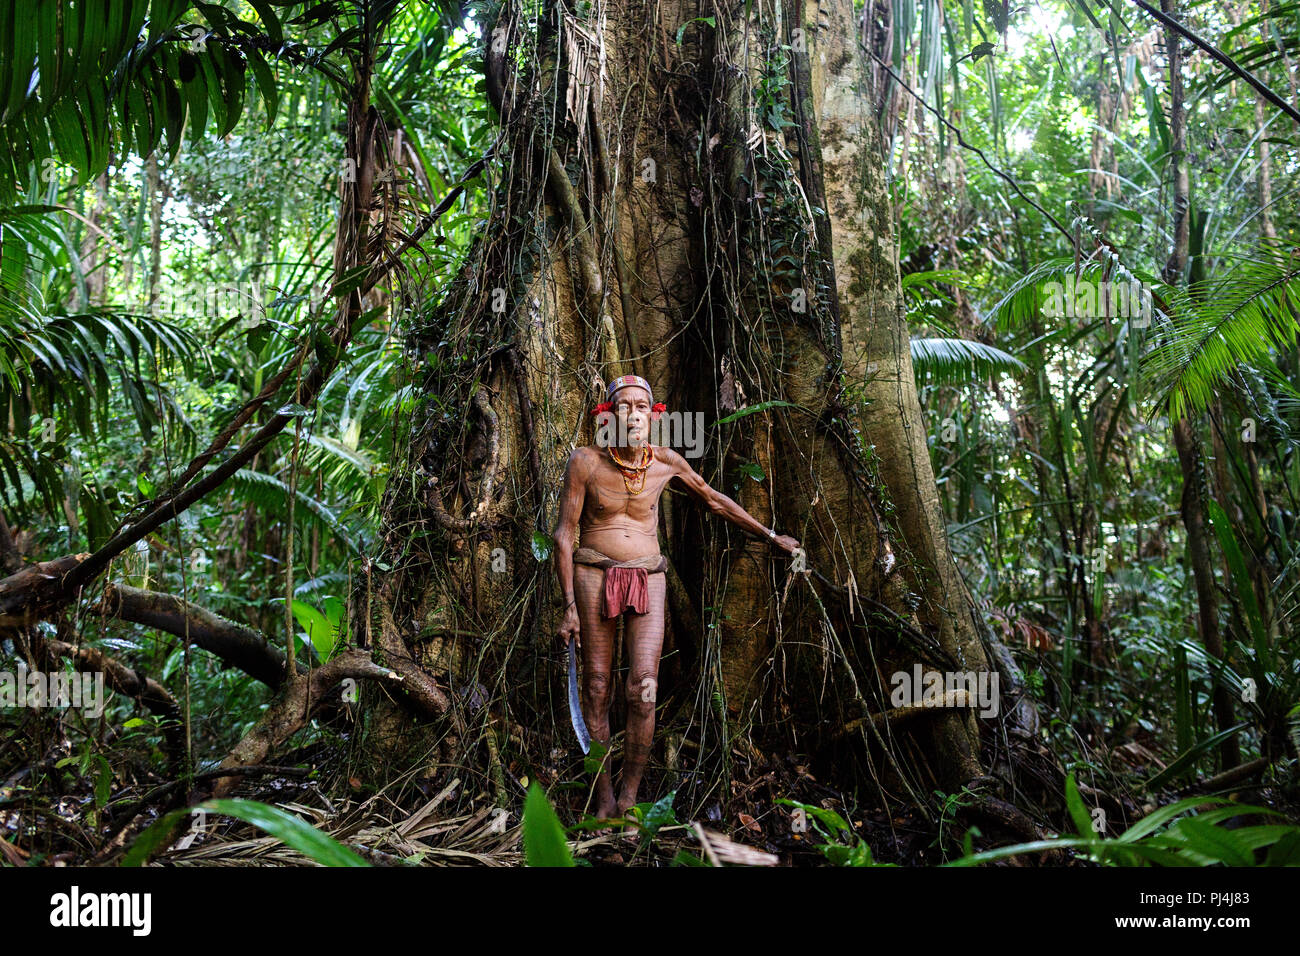 Old shaman of Mentawai tribe covered with tatoo standing at an old tree in dense jungle with a sword in his hands, Siberut, Sumatra, Indonesia - Stock Image